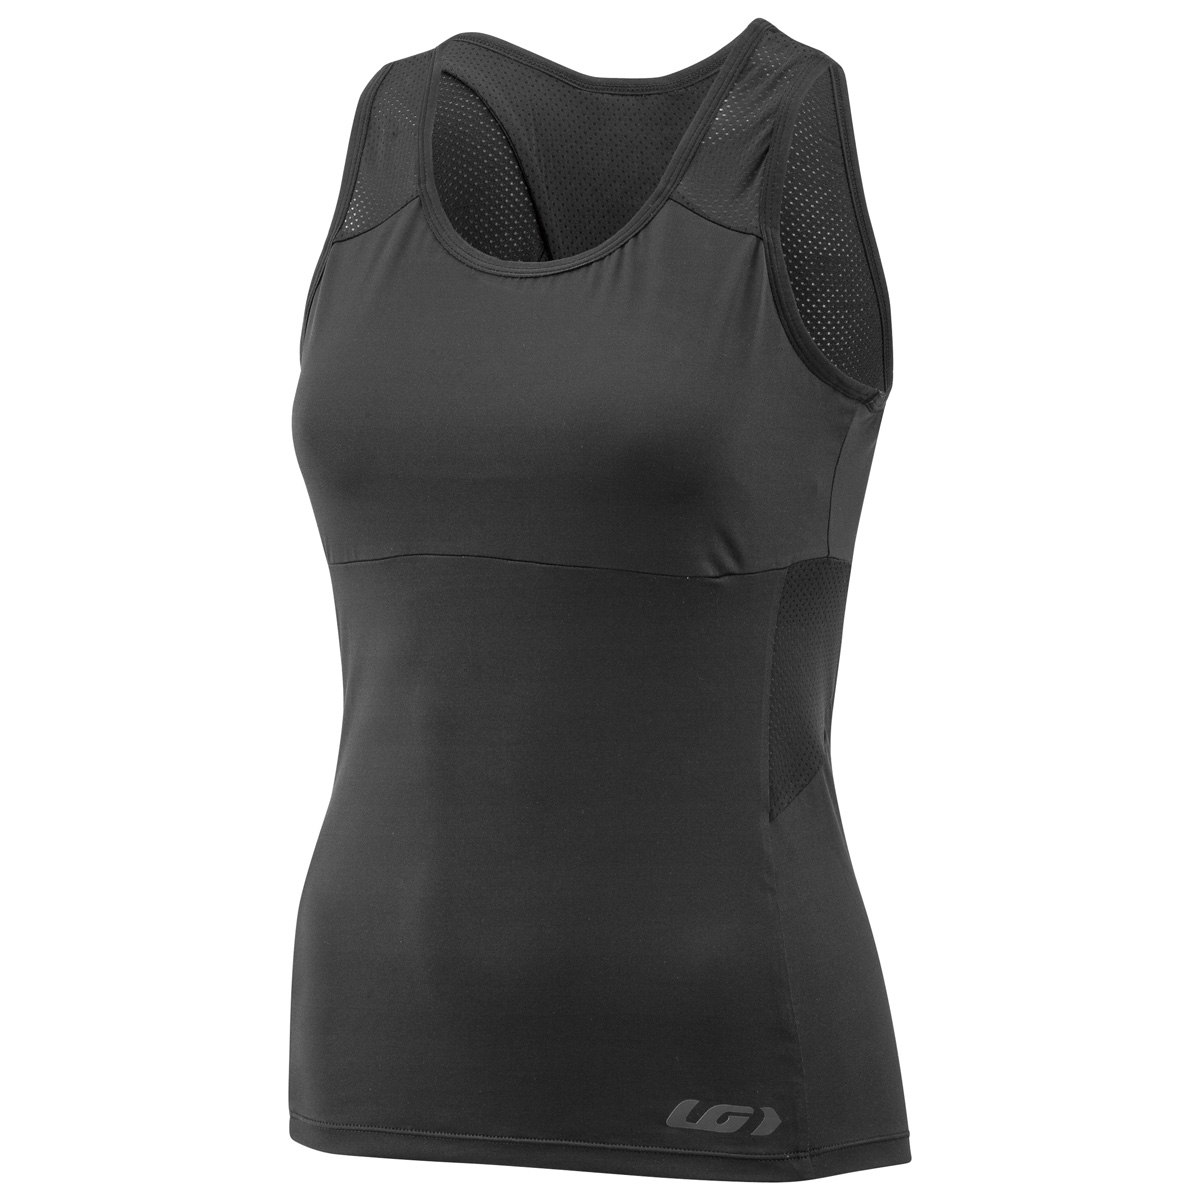 Louis Garneau 2018 Women s Lea Cycling Tank Top - 1025174  Picture 2 of 3   Picture 3 of 3 65316837d